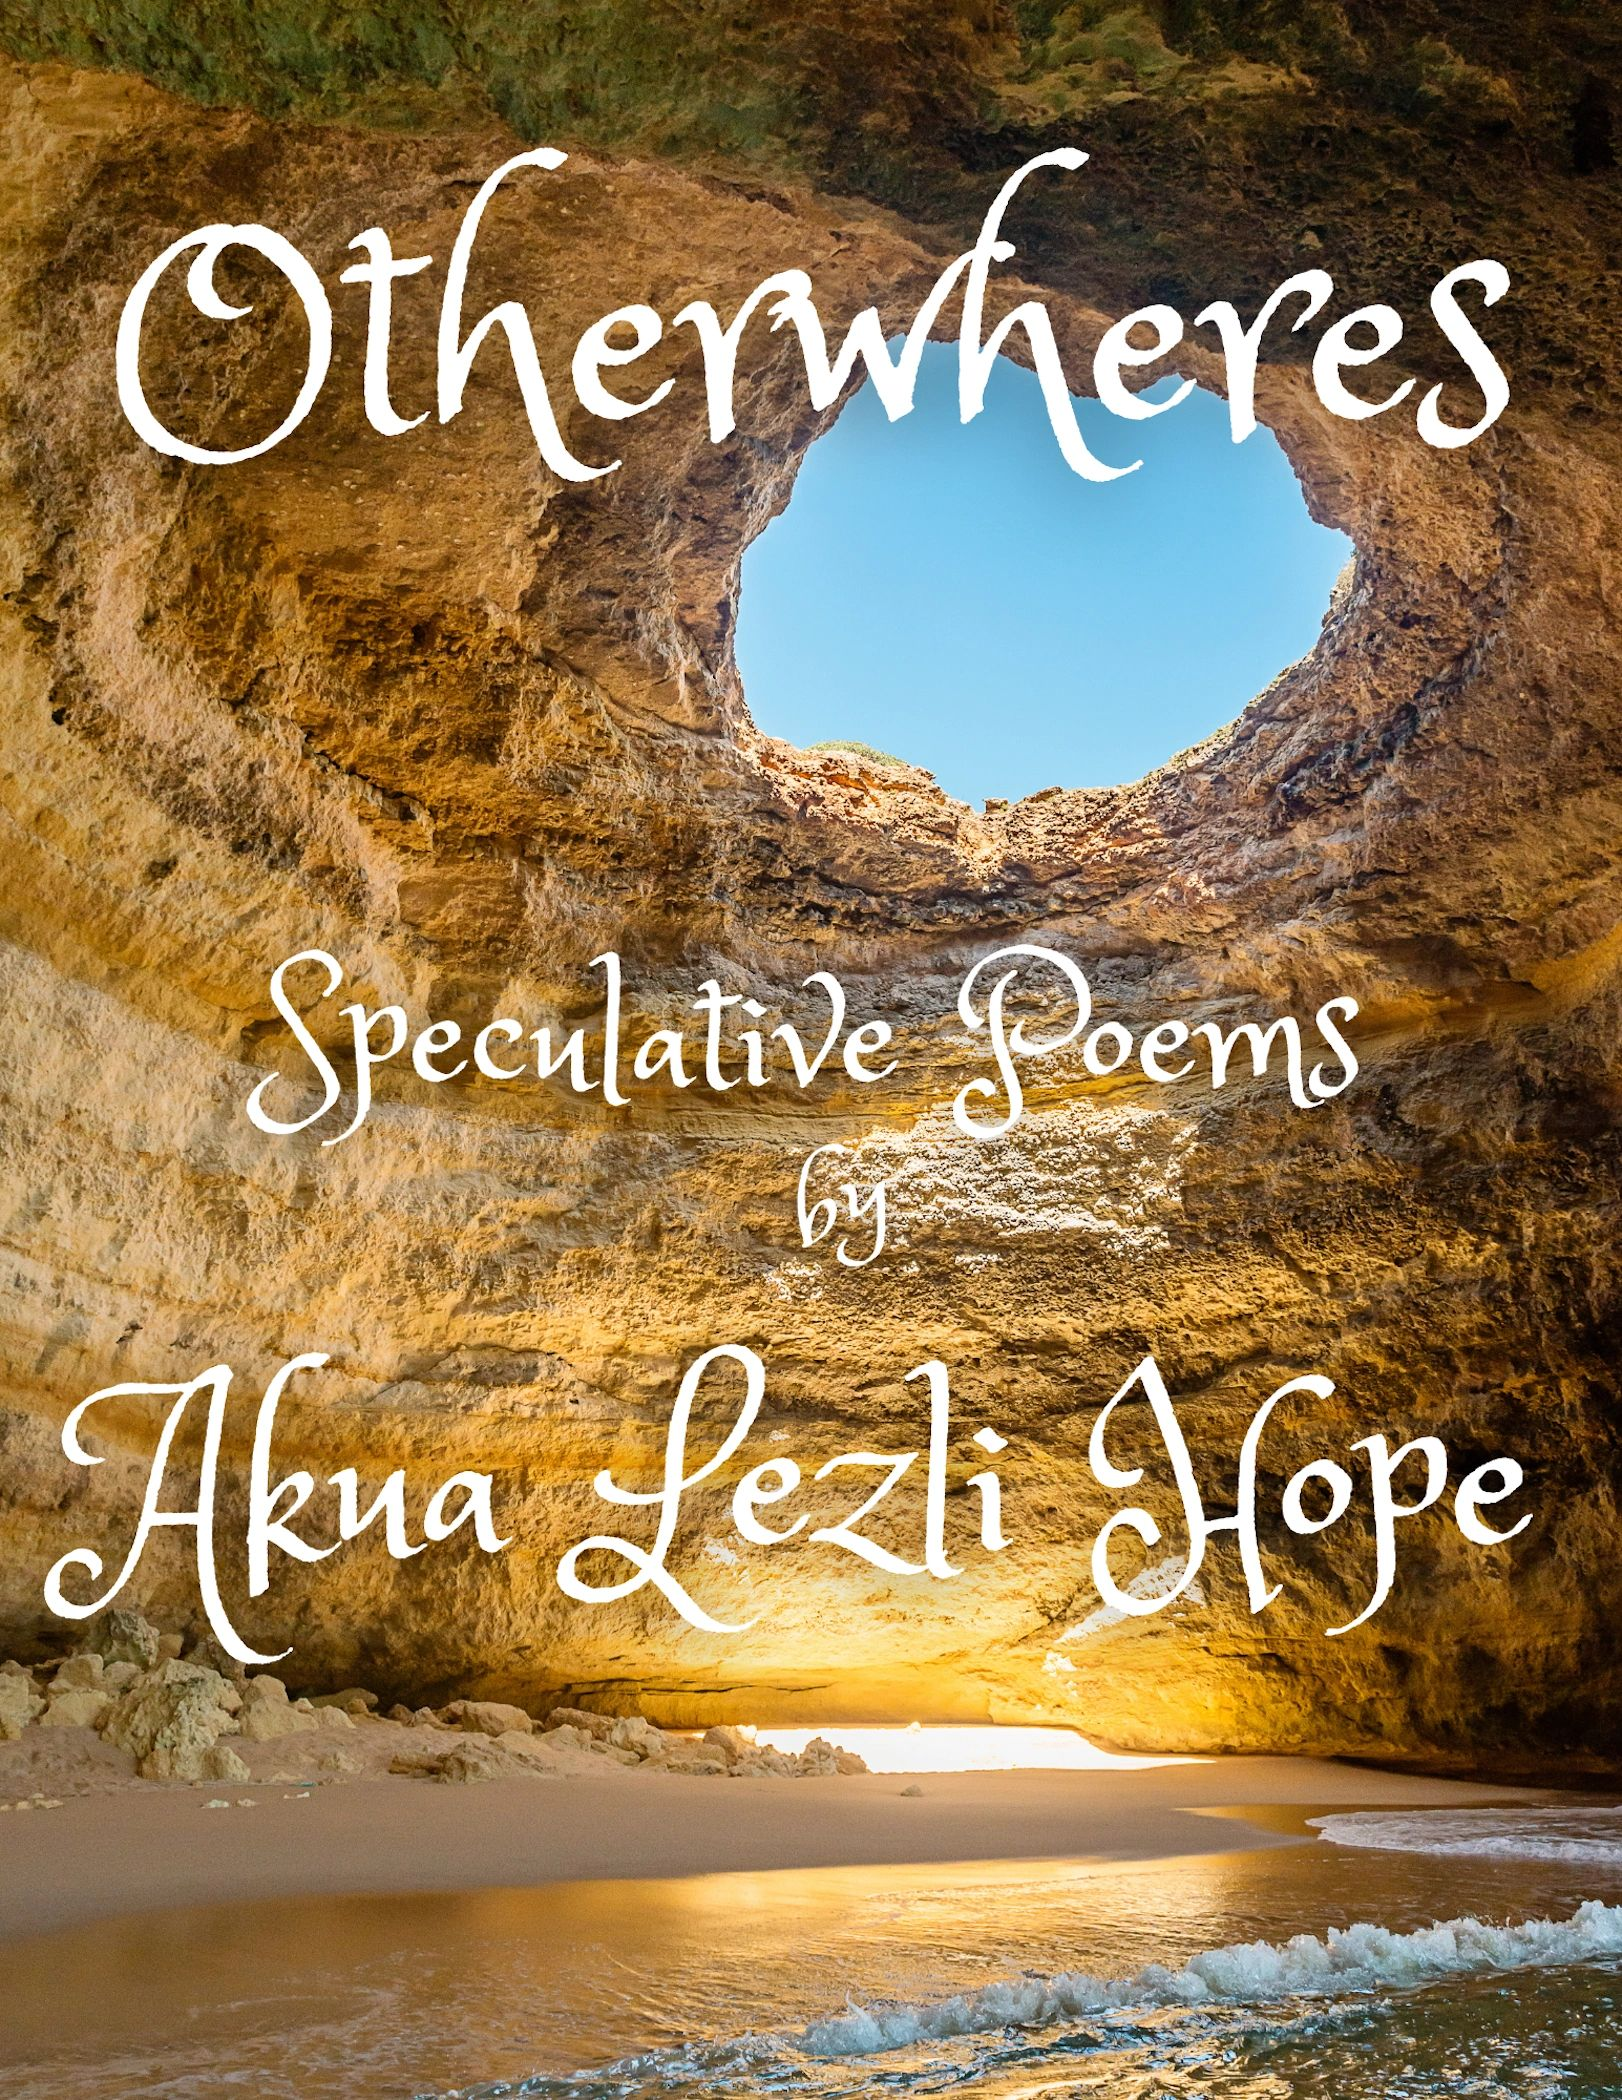 Cover of Otherwheres Speculative Poems by Akua Lezli Hope